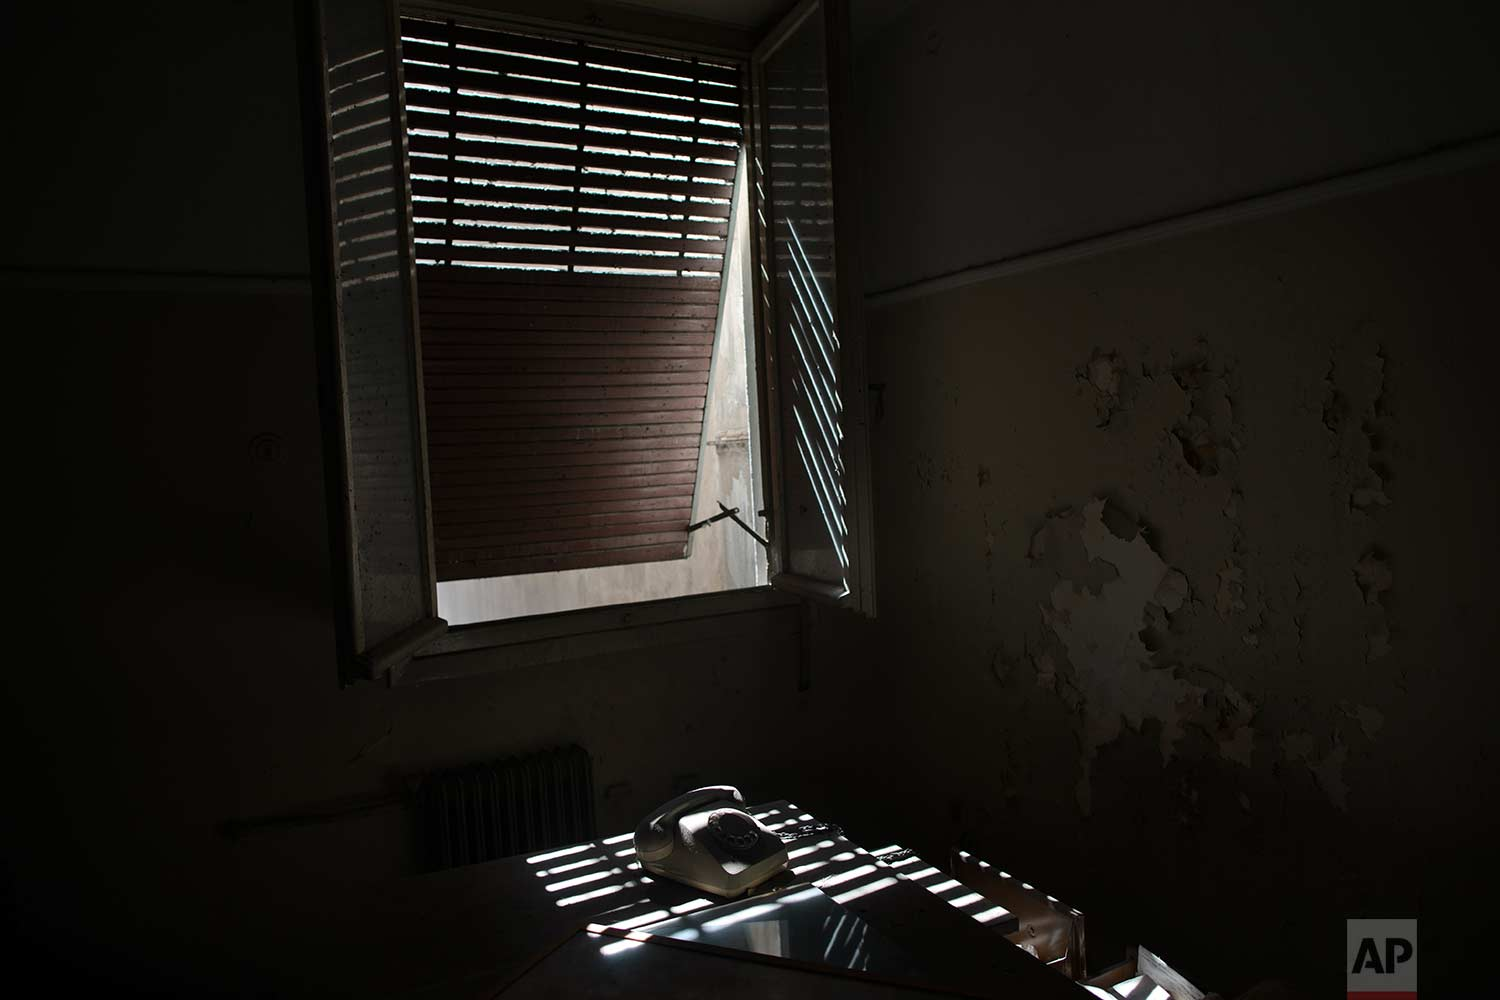 An old telephone is lit by bars of sunlight inside a 7-story block off central Athens' gritty Omonia Square, that has been untenanted since a now-defunct farm cooperative fund left years ago. (AP Photo/Petros Giannakouris)